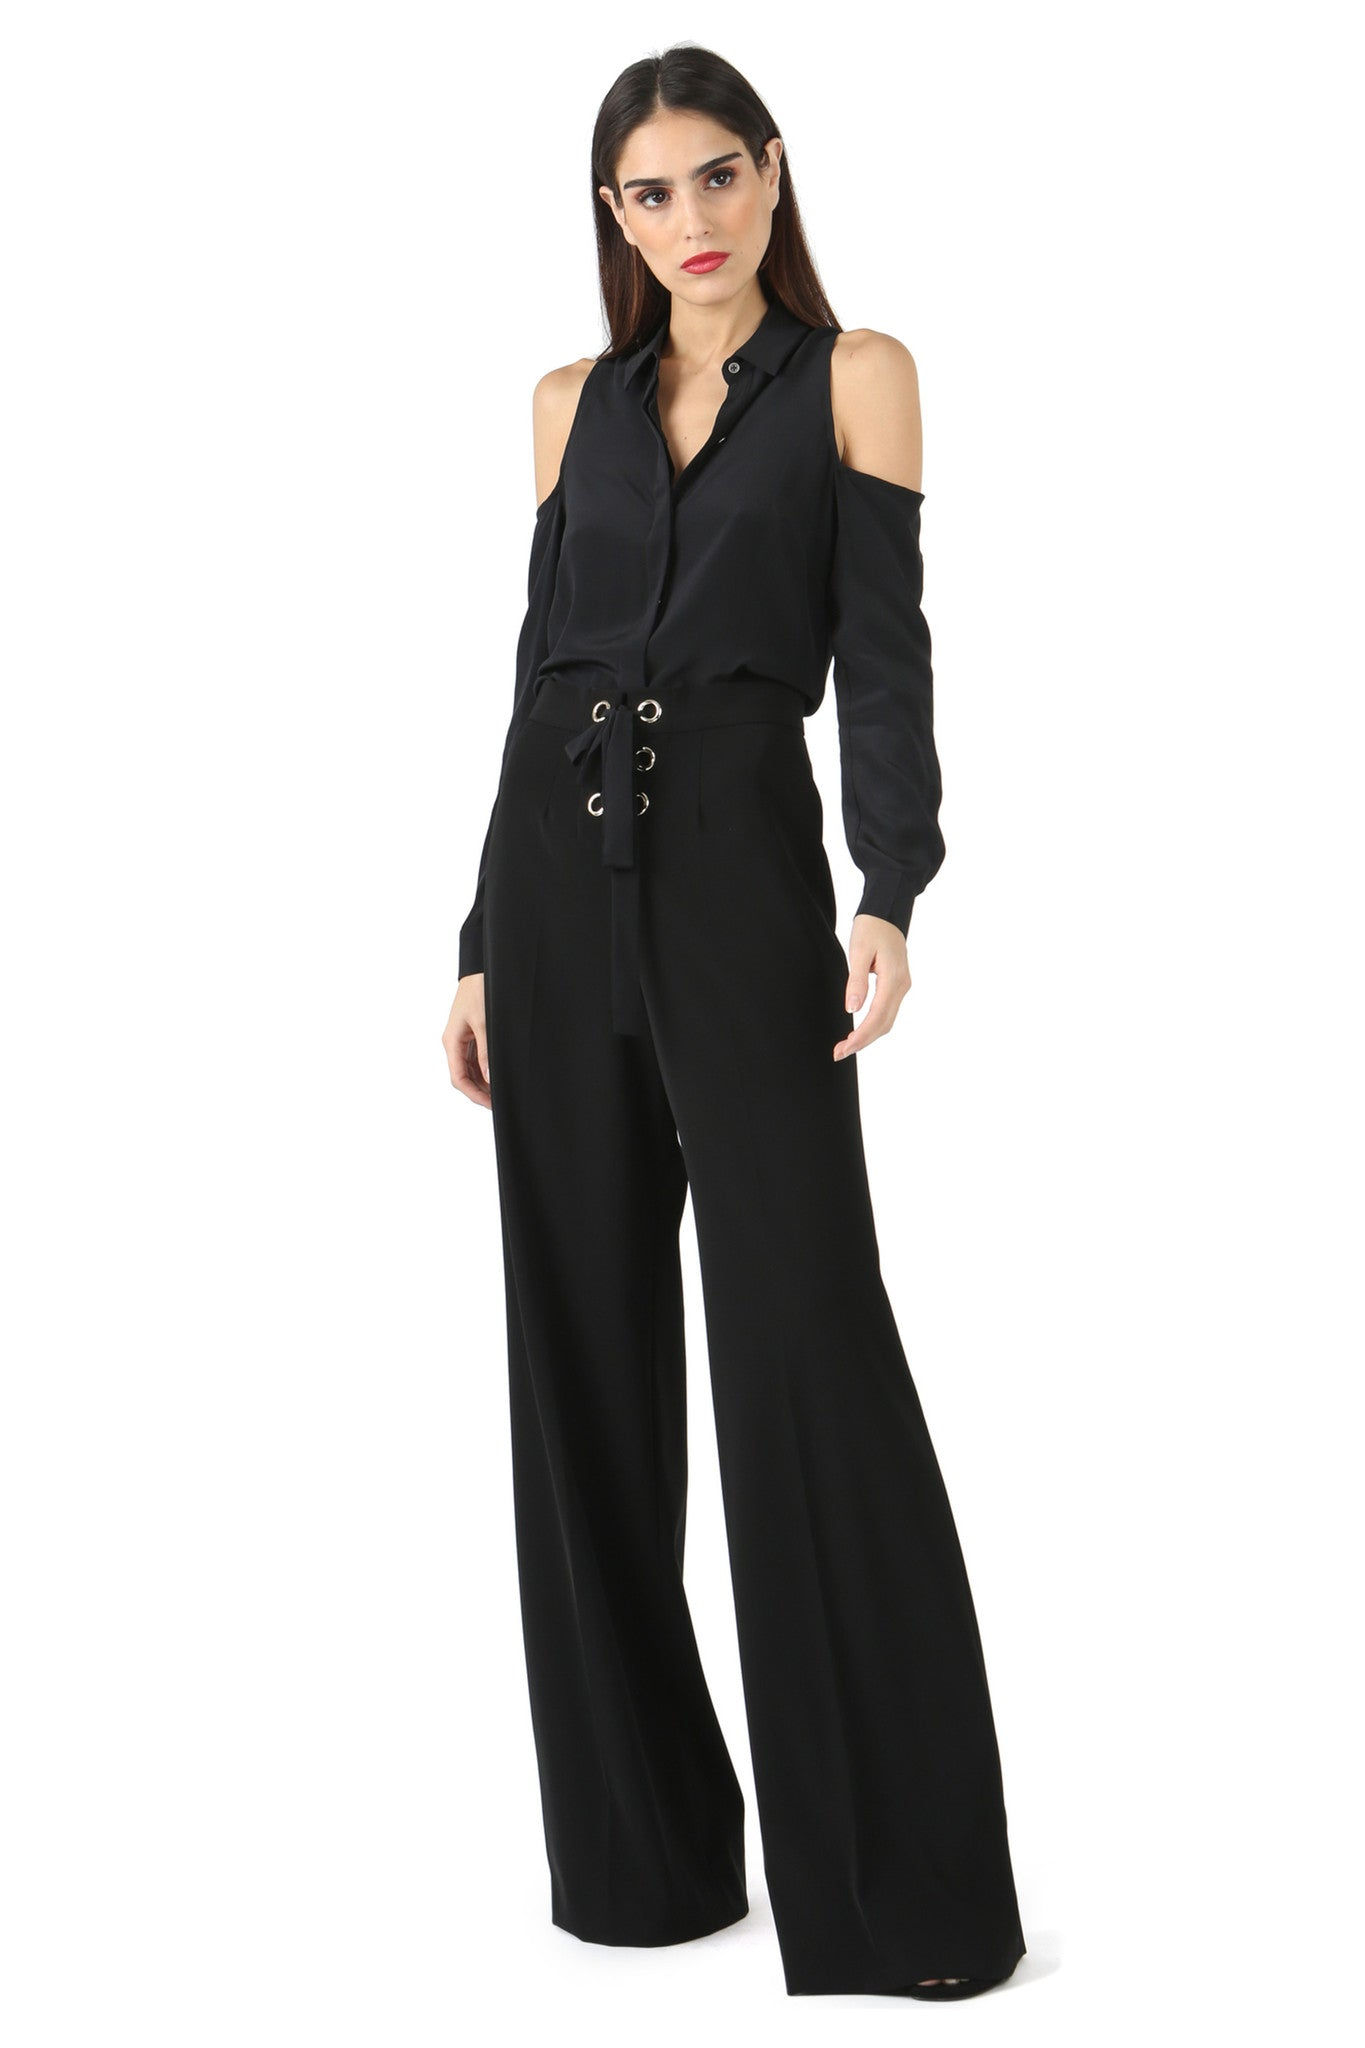 Jay Godfrey Black Lace-Up Wide Leg Pants - Full Front View